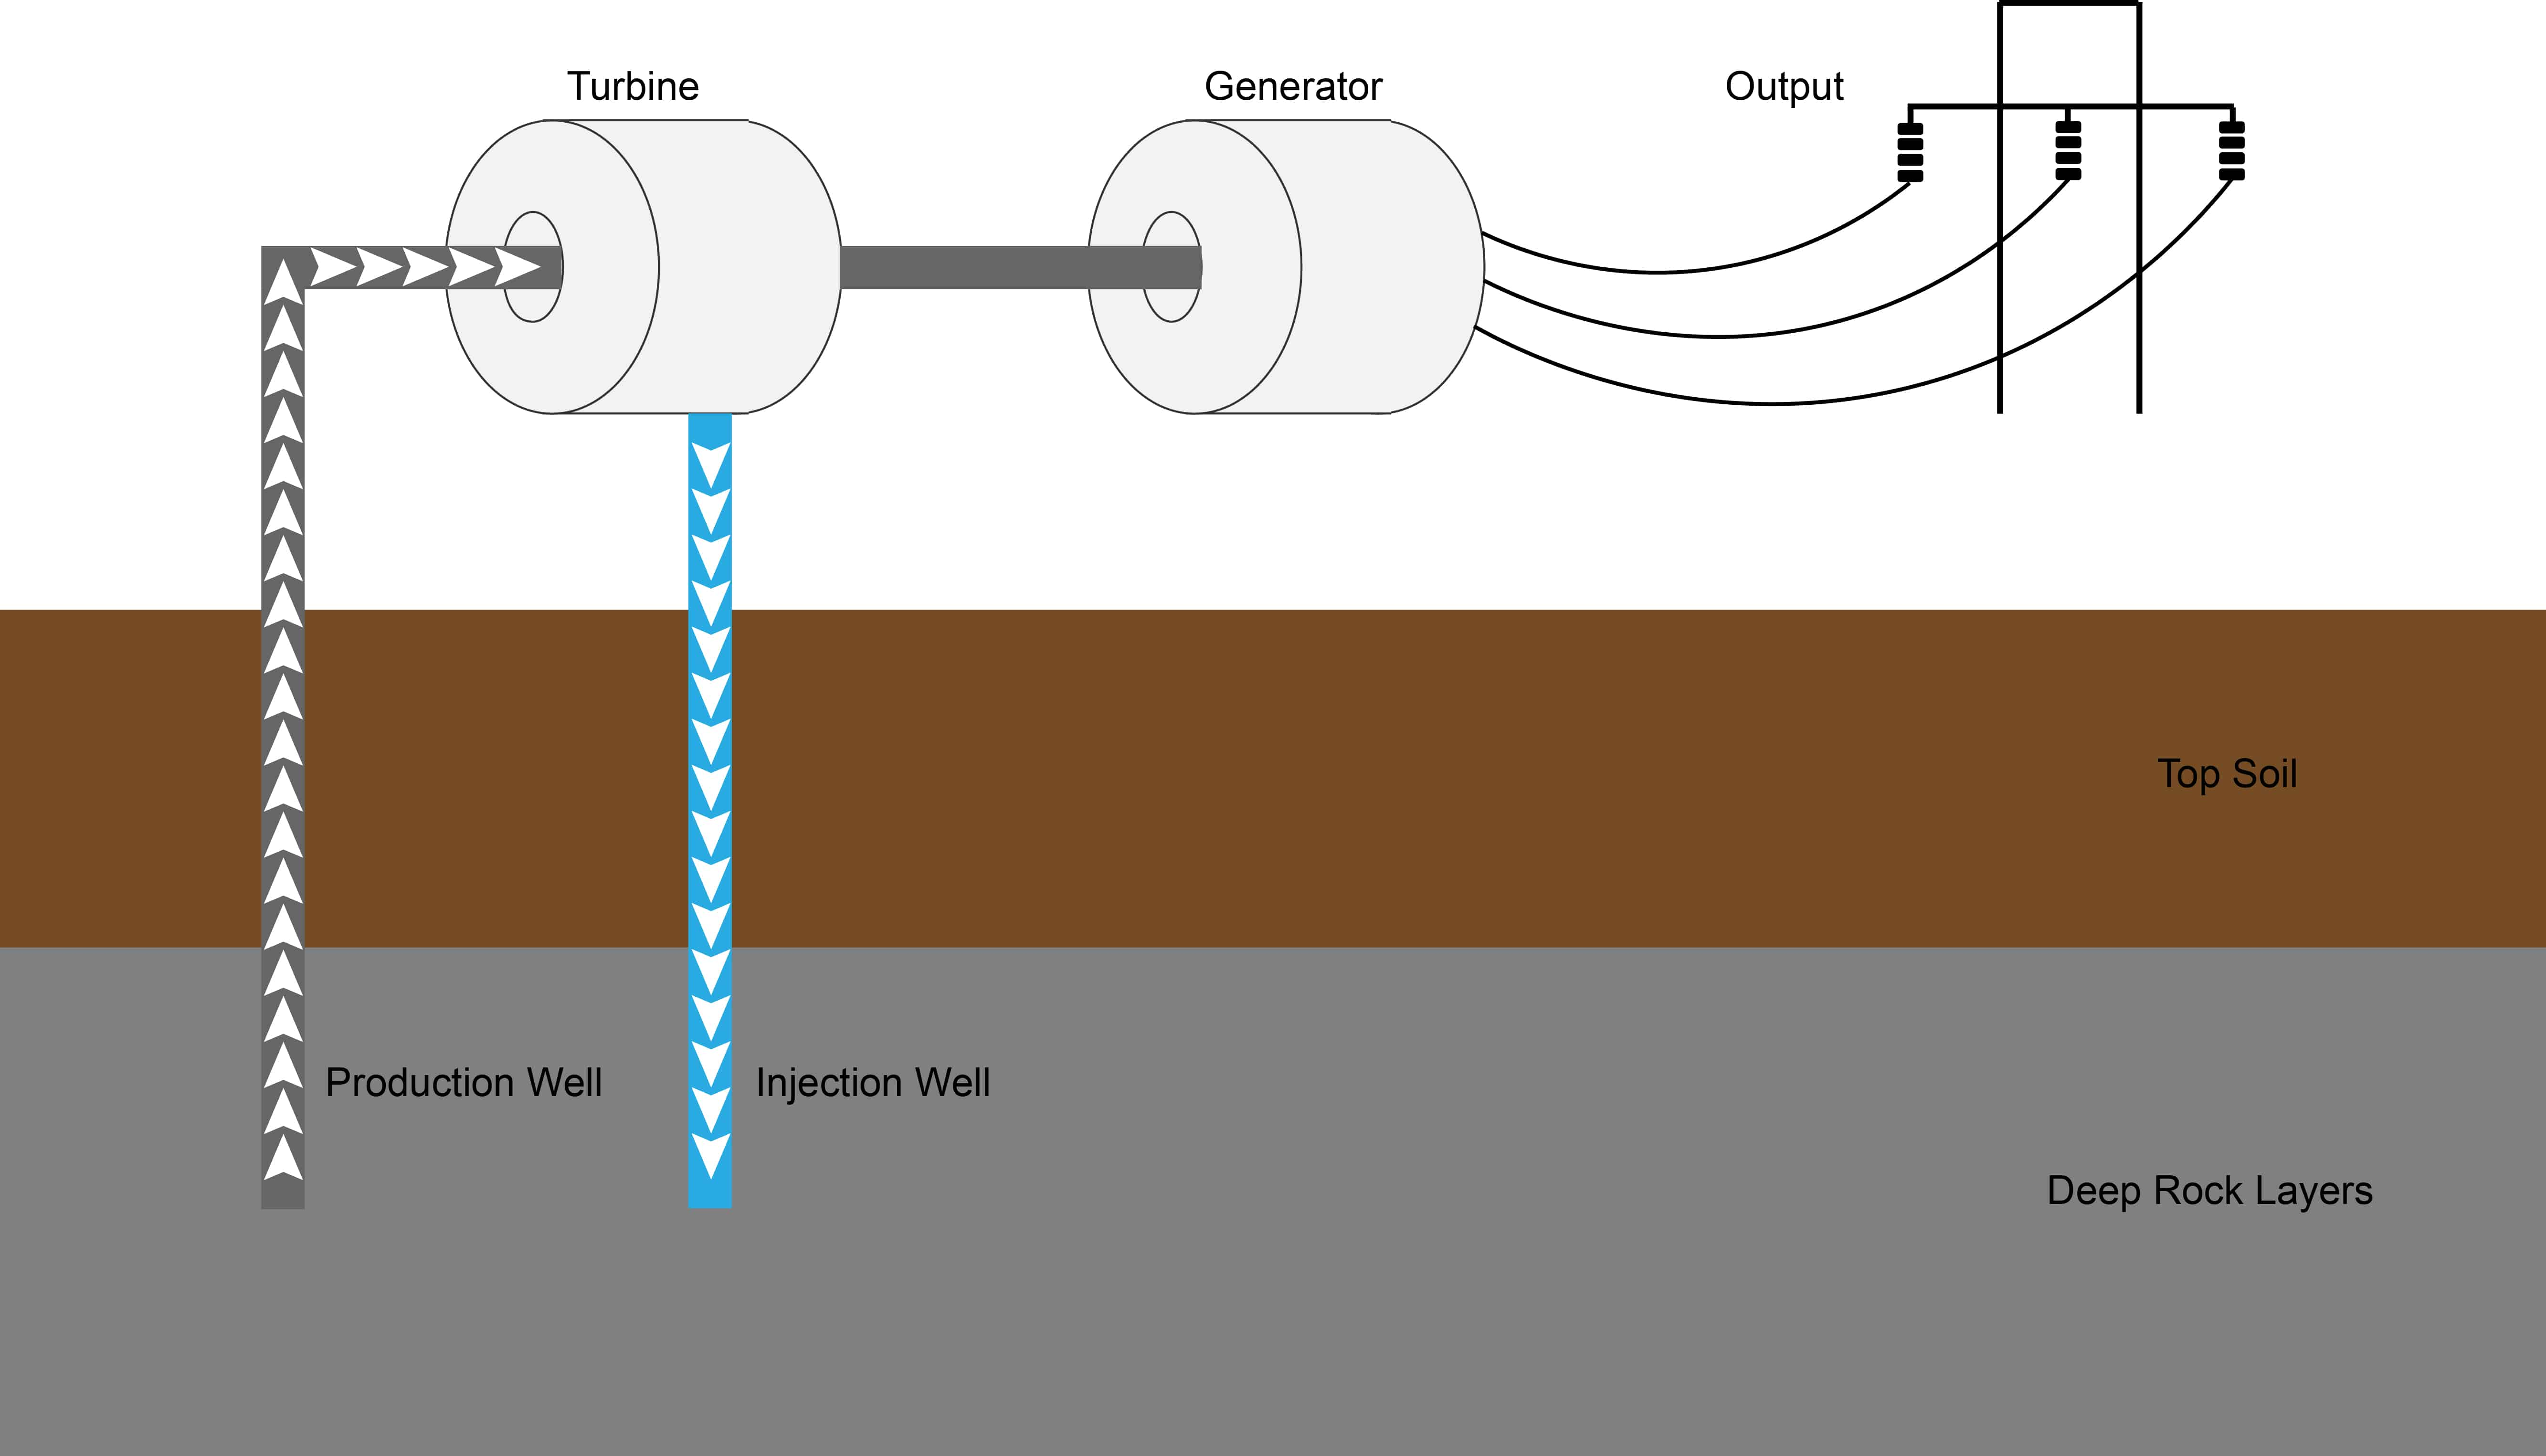 Geothermal Power Station Diagram | Clean Energy Ideas